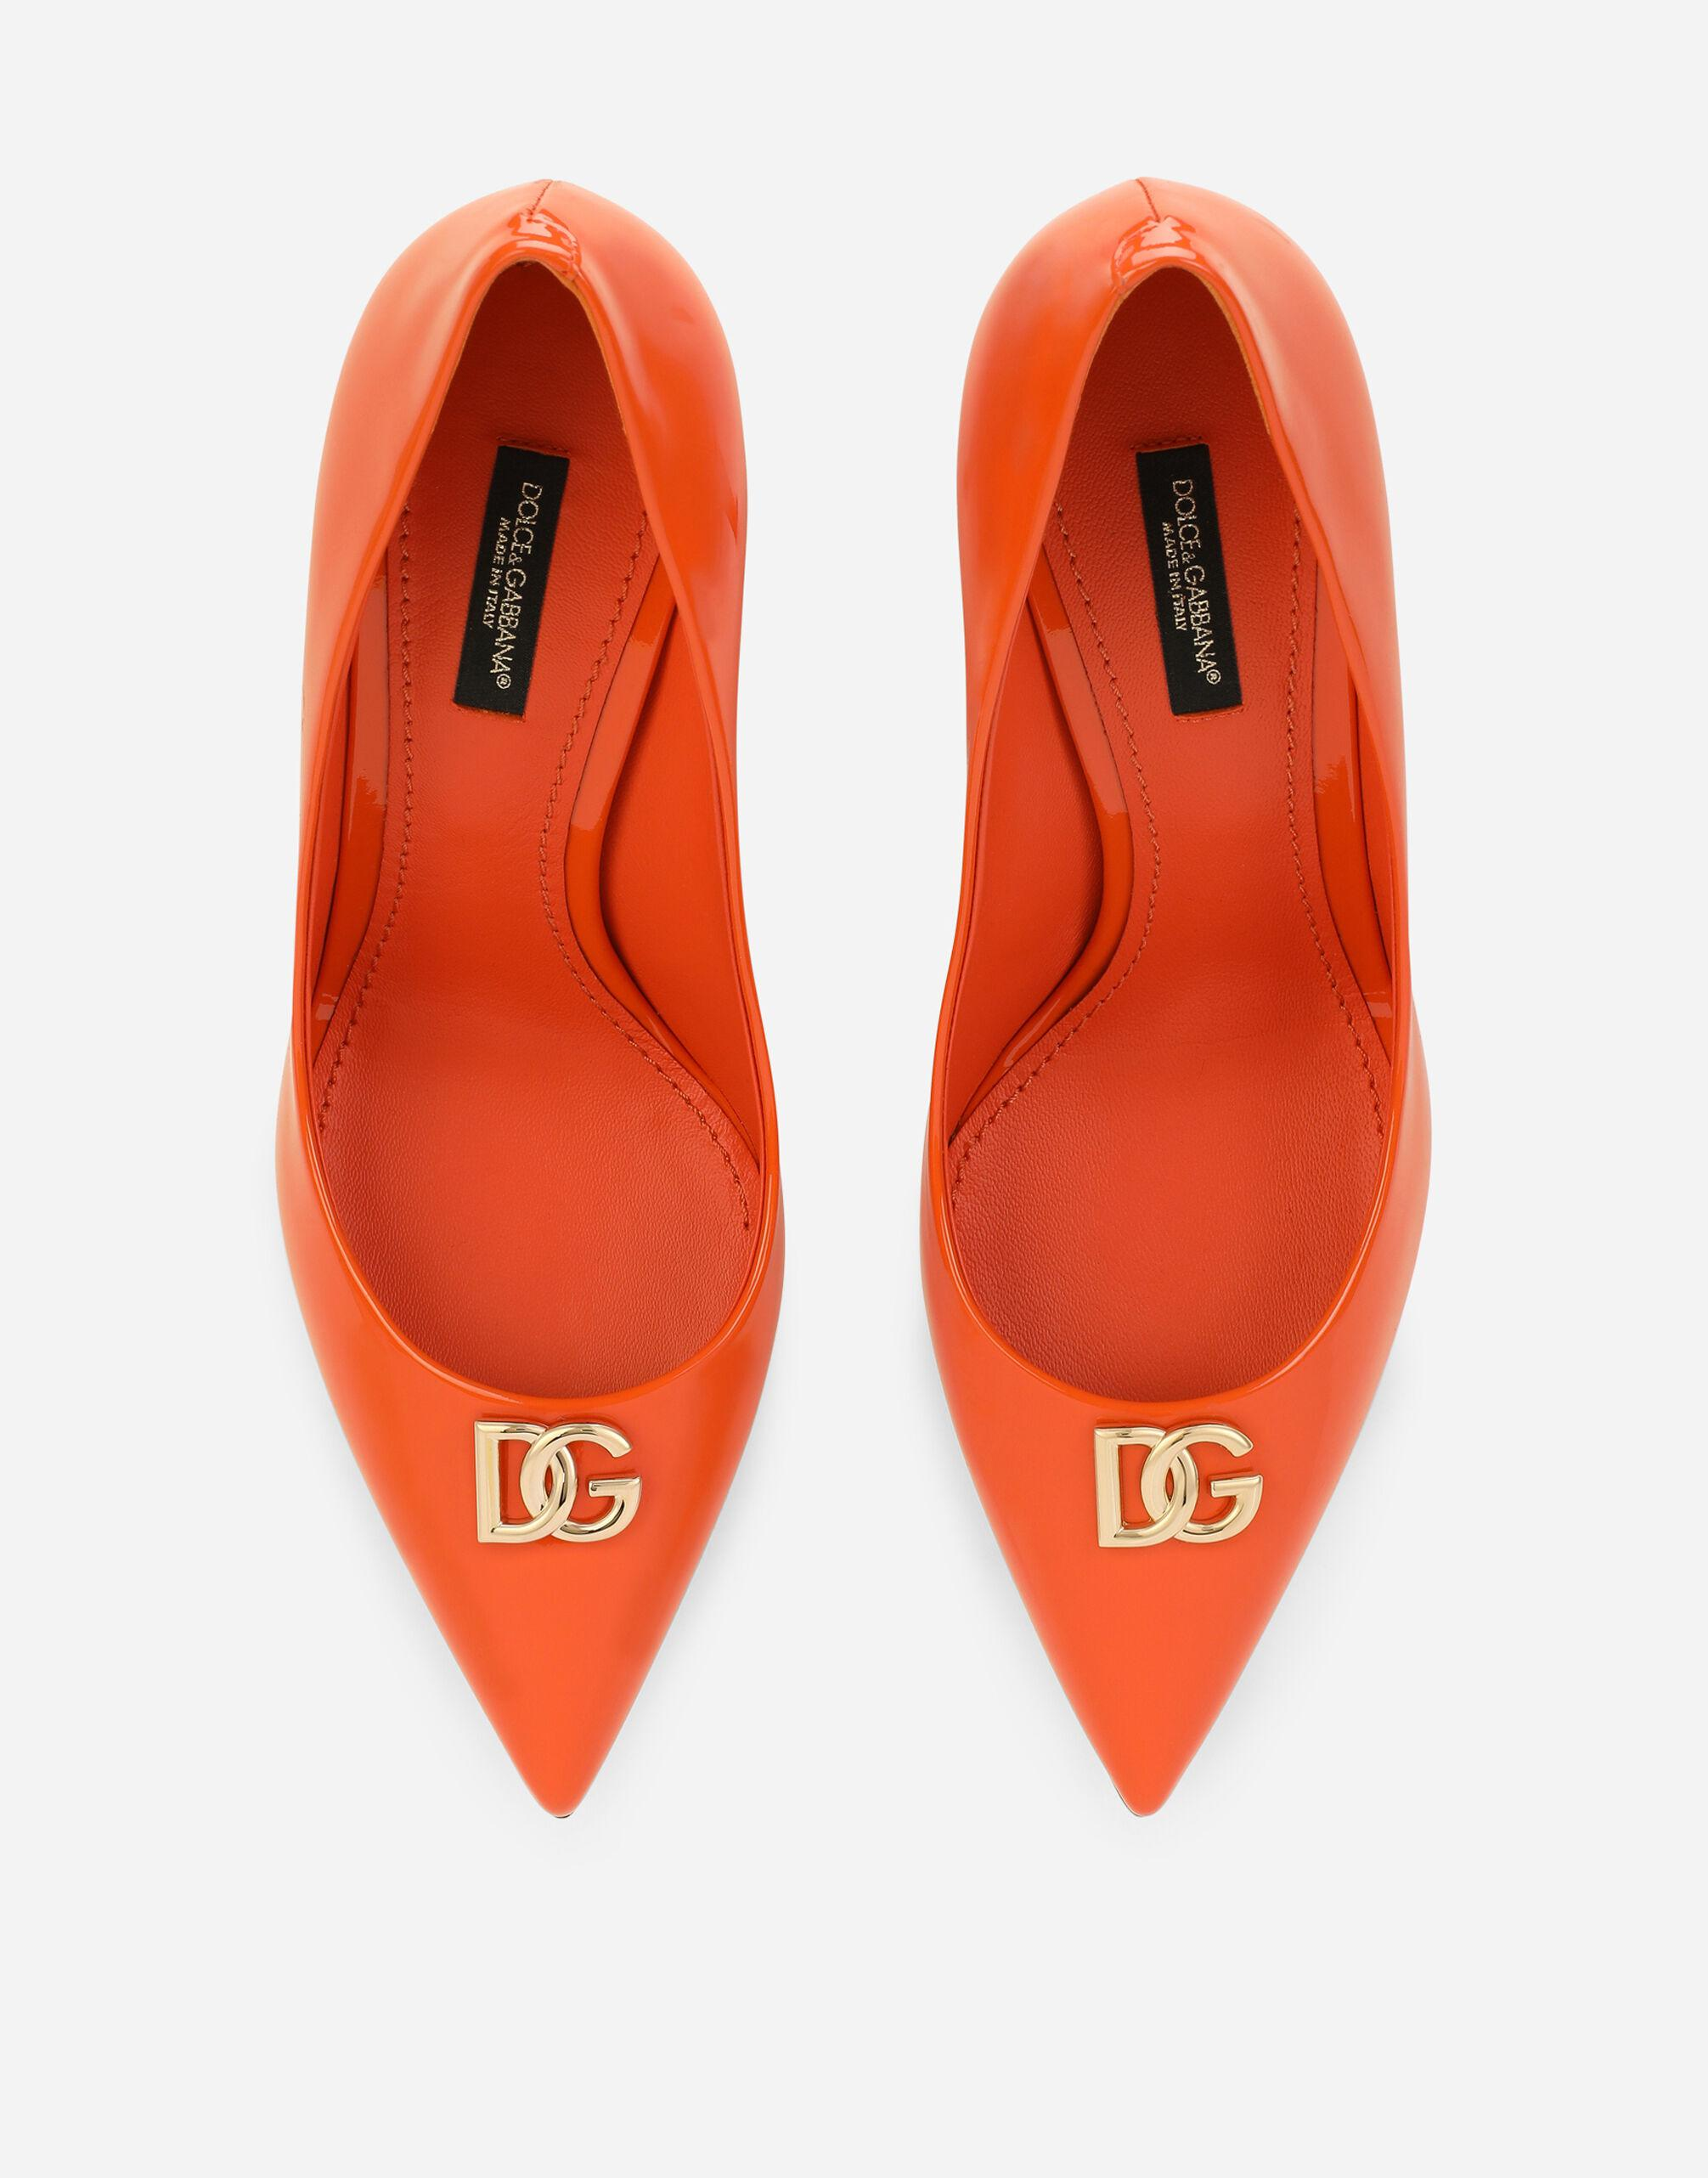 Patent leather pumps with DG logo 3